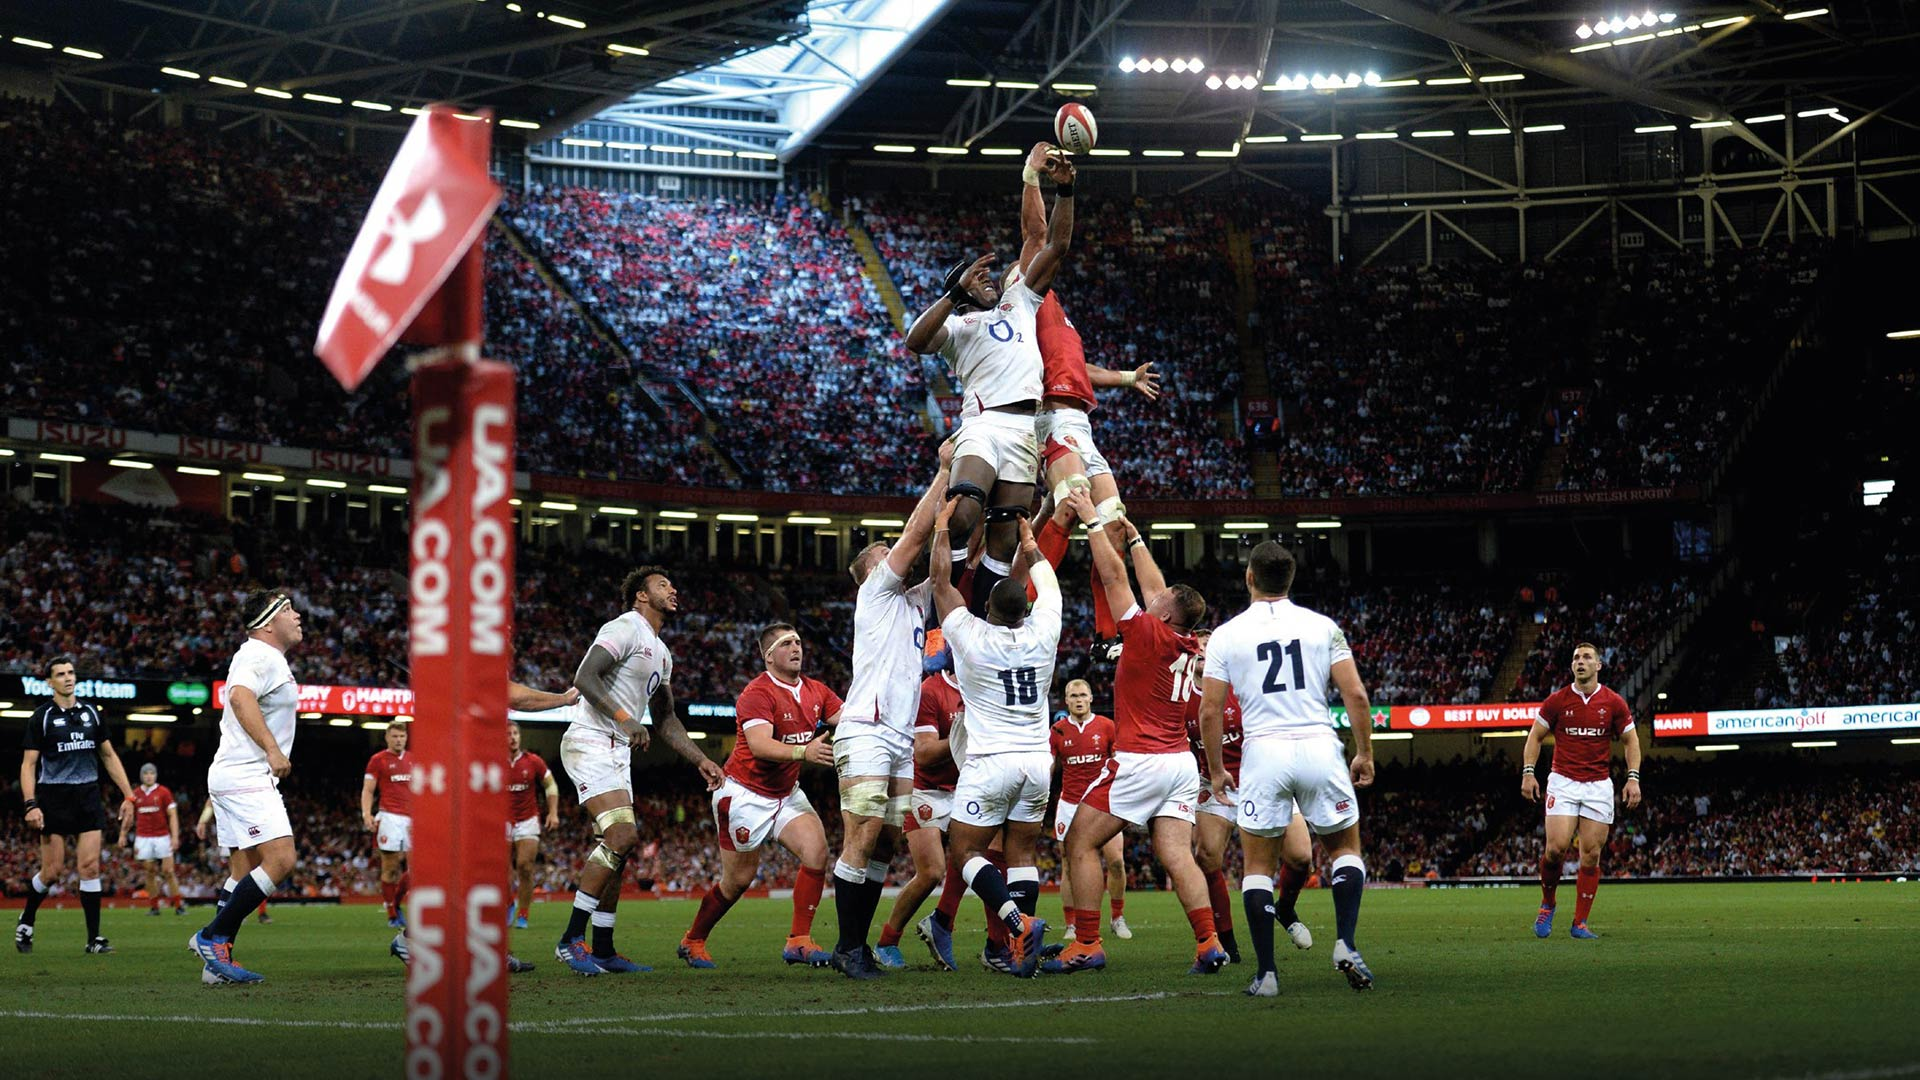 Five reasons to go to the Six Nations match between Wales and England